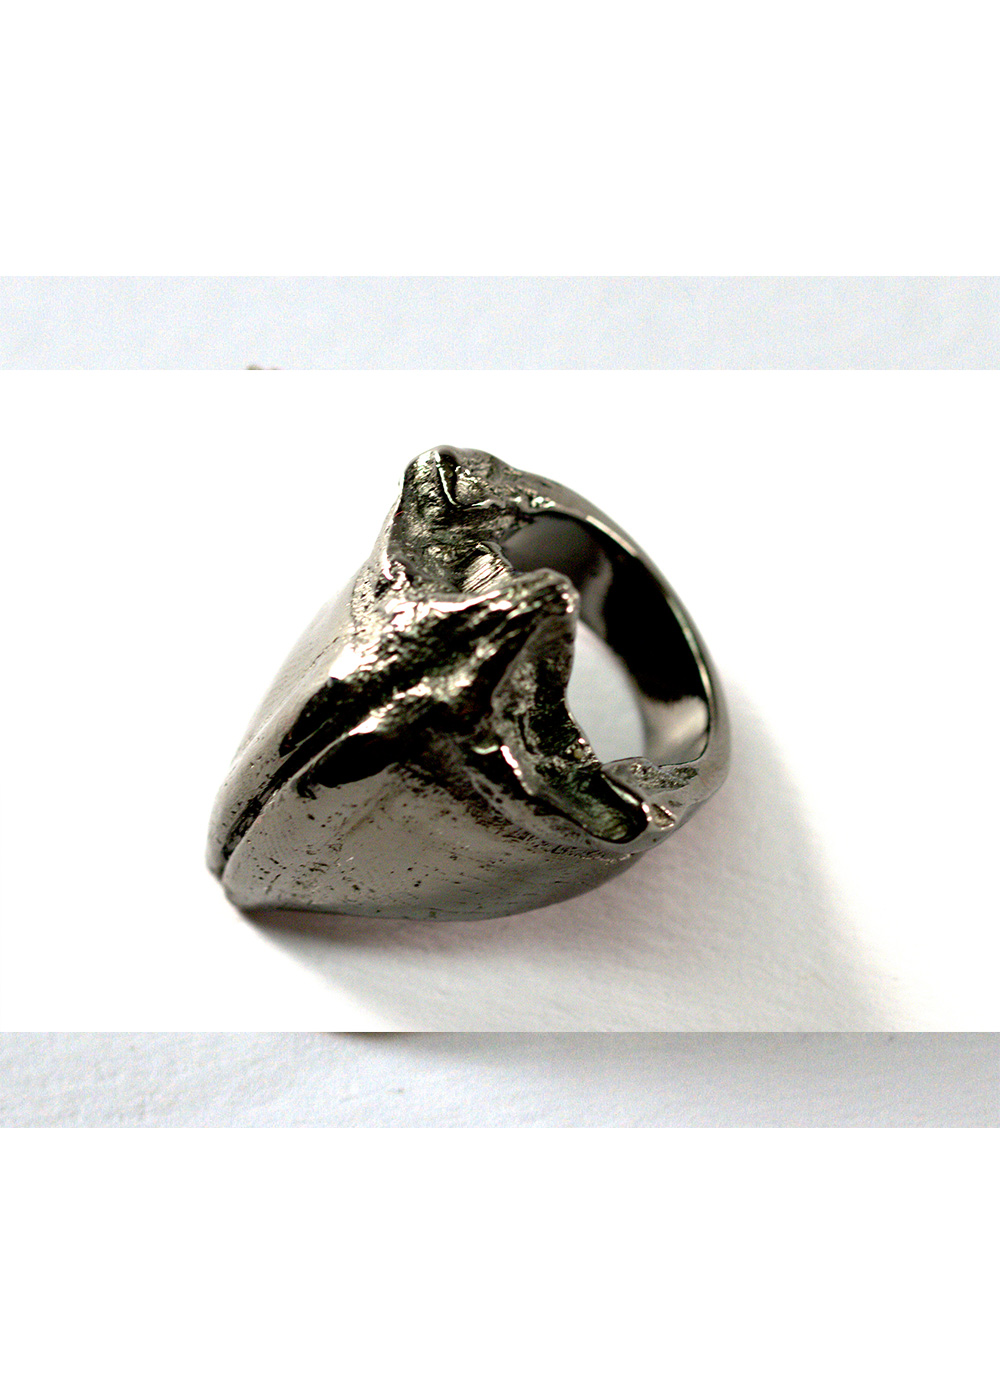 maxilla ring, black rhodanized